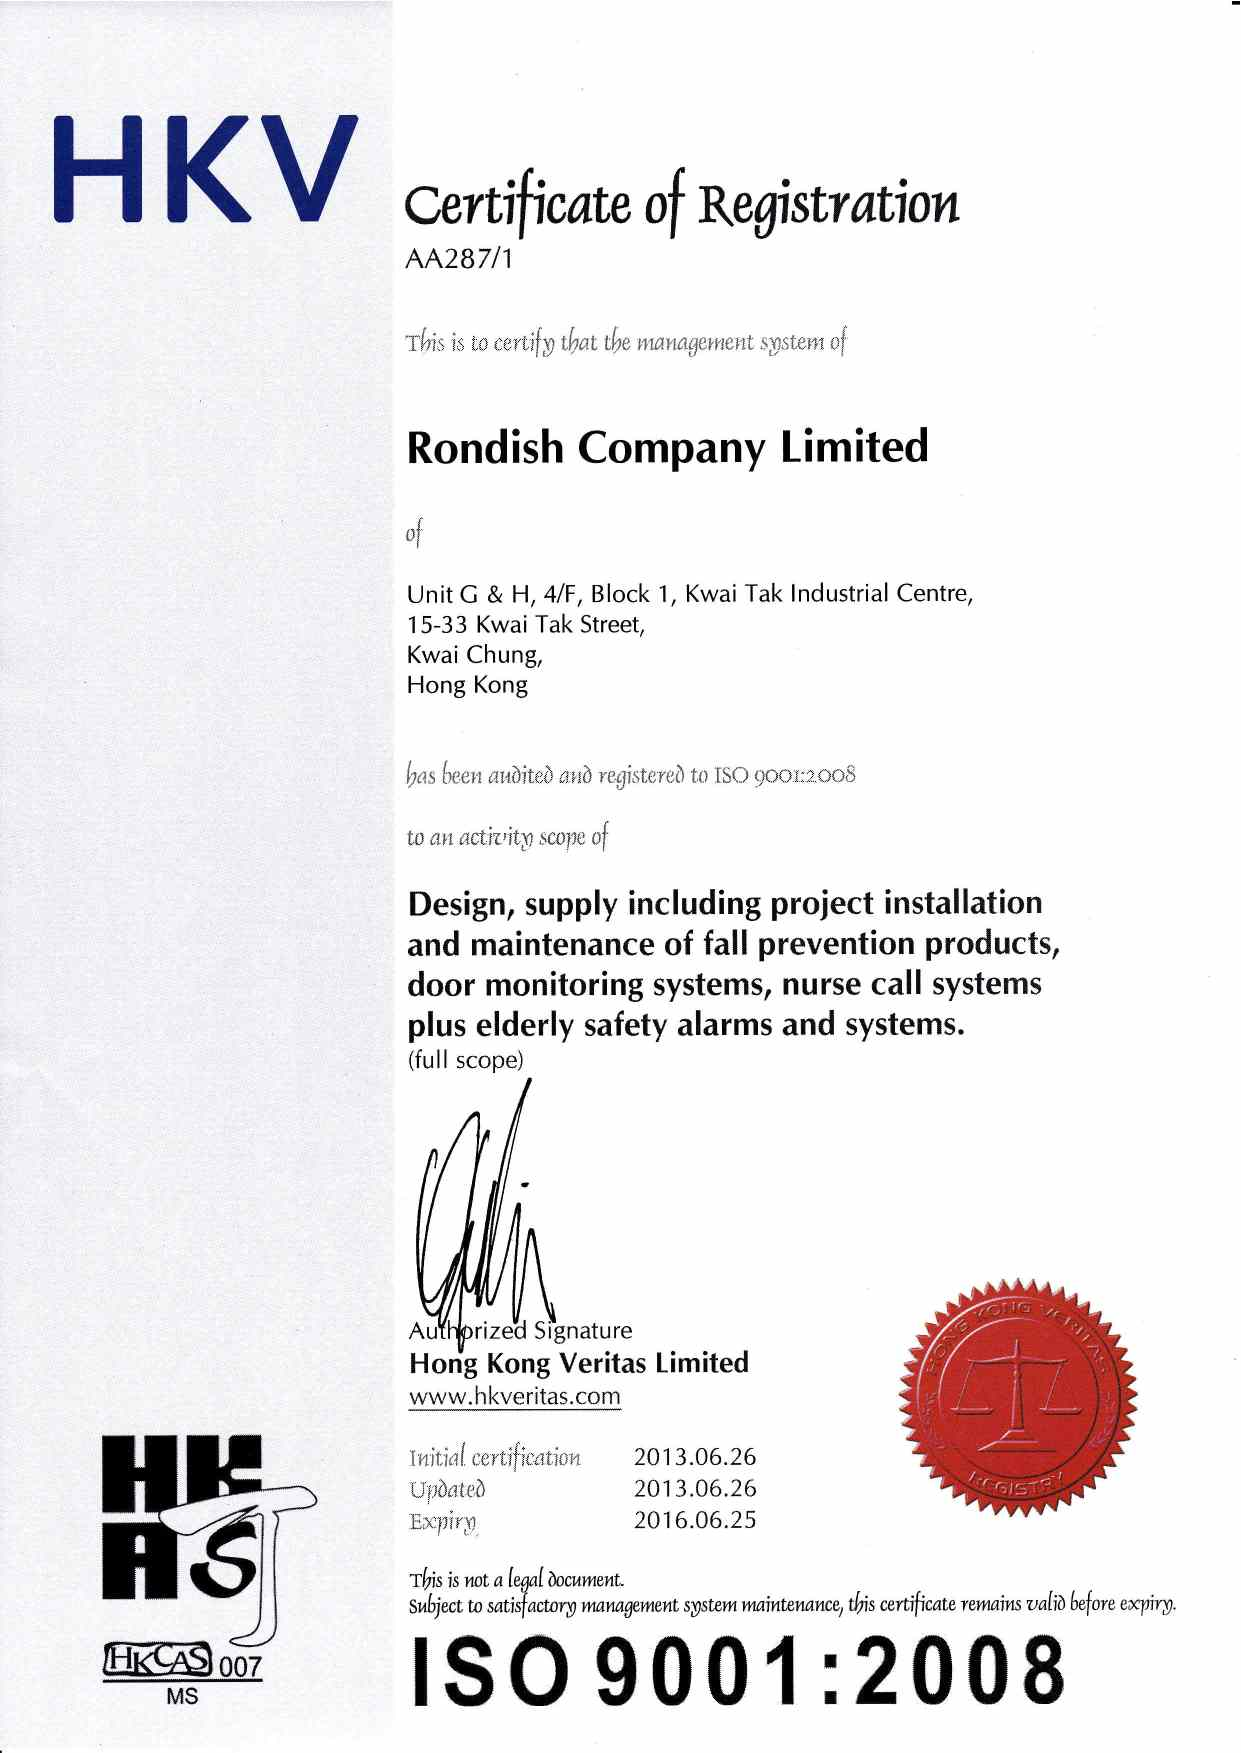 Company Overview - RONDISH COMPANY LIMITED